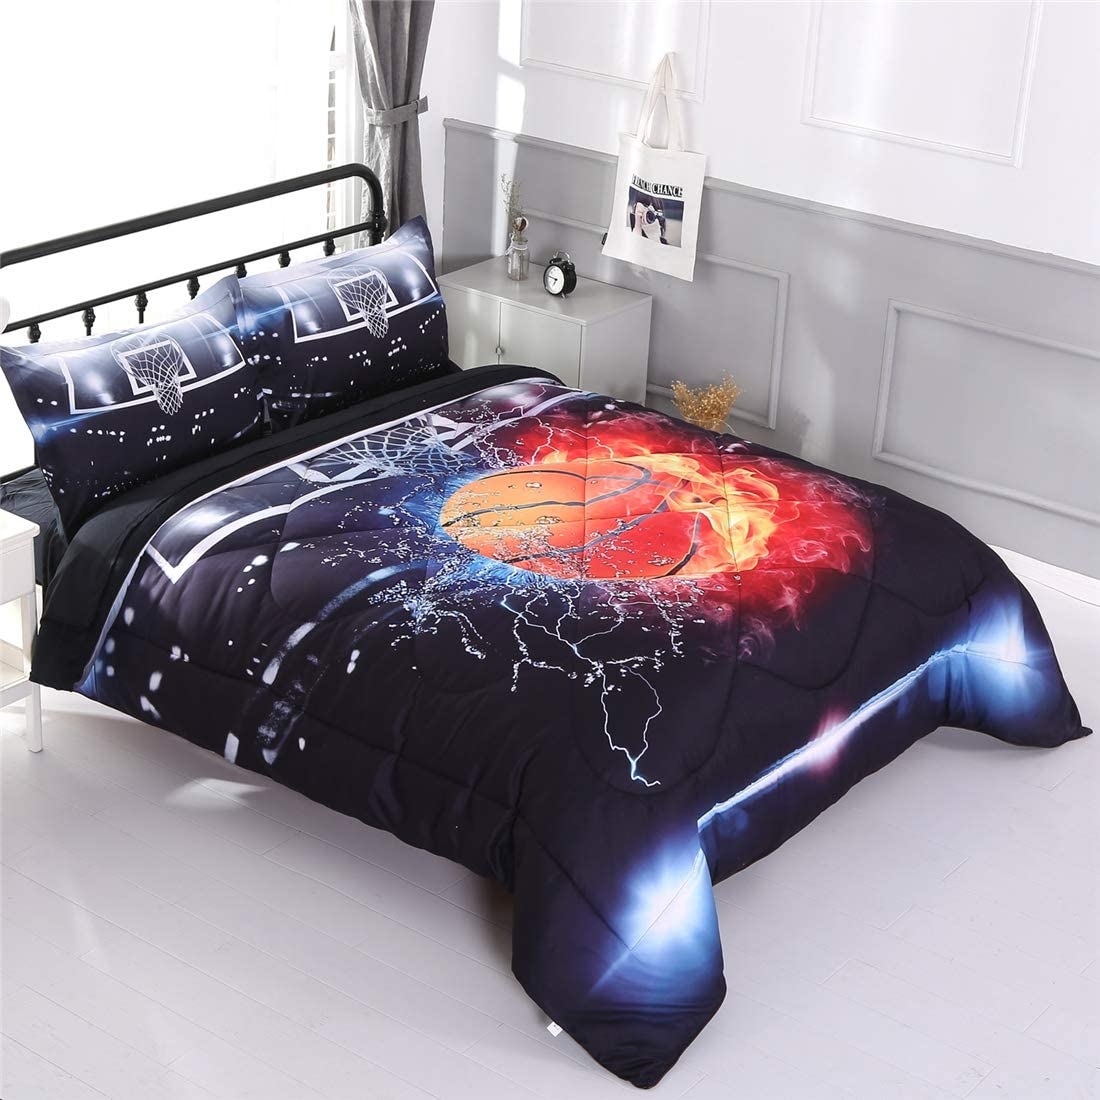 Tencel Cotton Fabric with Soft Microfiber Fill Bedding Home College School Dorm Room Decor Cool Basketball Pattern Print Bedding Set for Boys and Girls Luxury Quilted Comforter Set - Queen Black